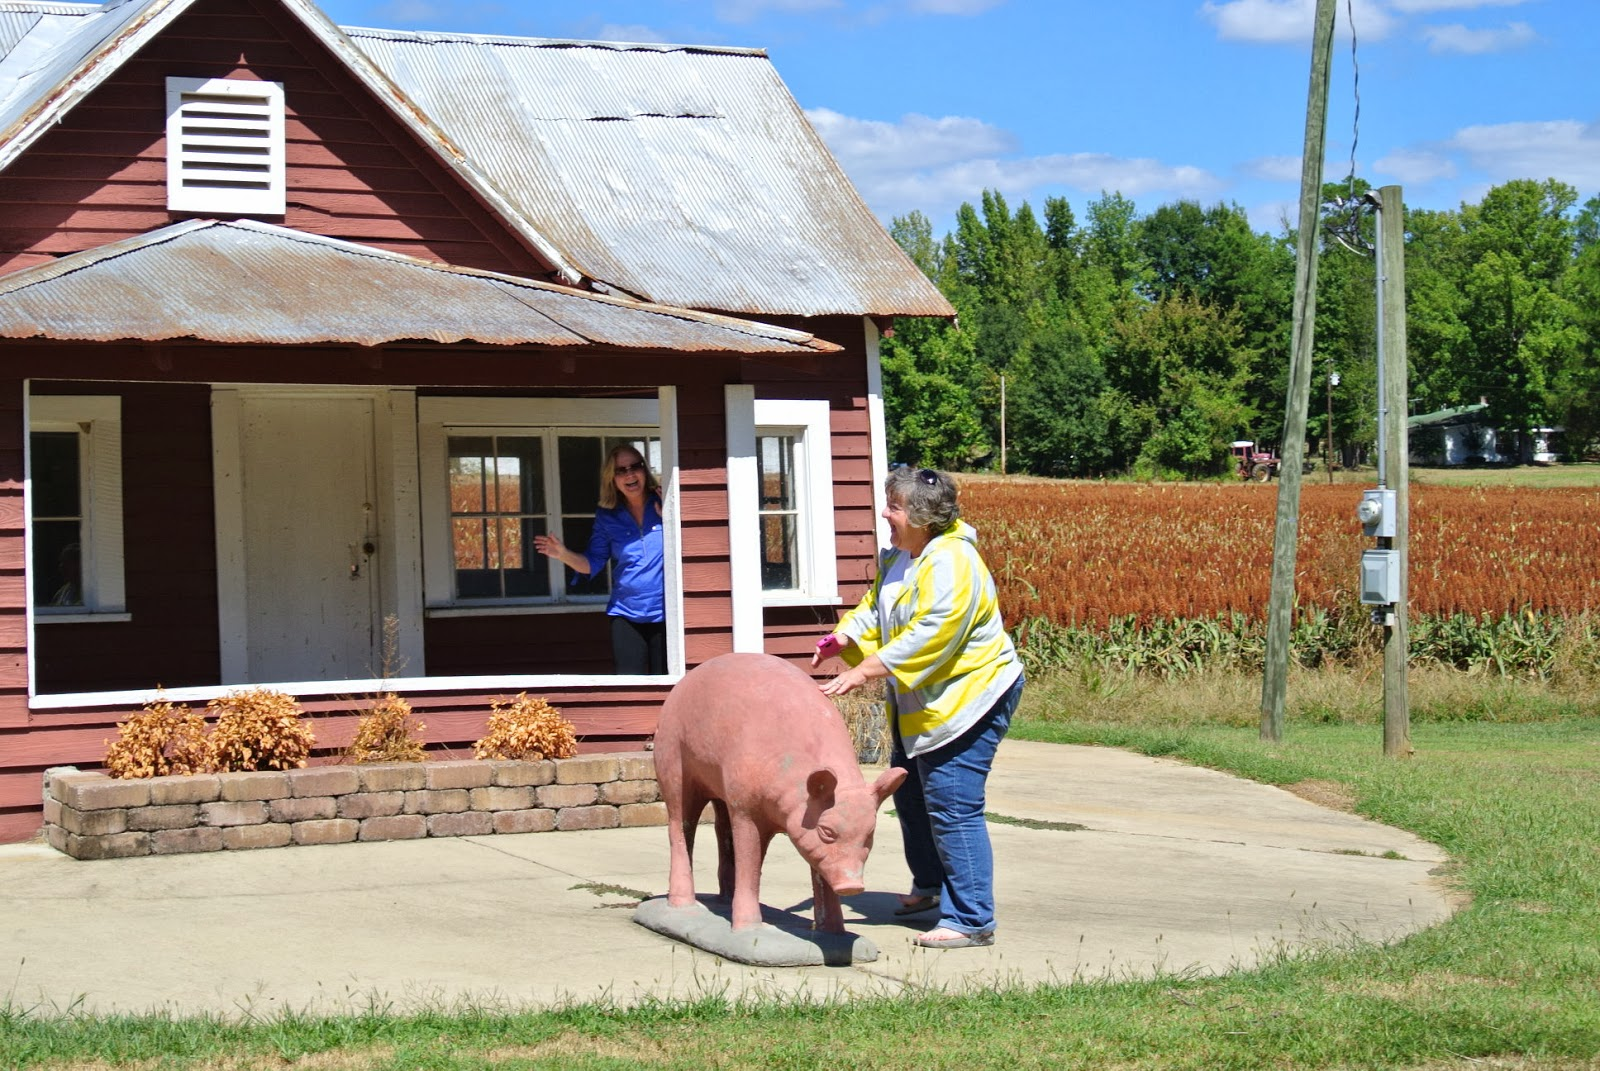 Mississippi tallahatchie county tippo - Susan And Kay In Front Of Scissors House